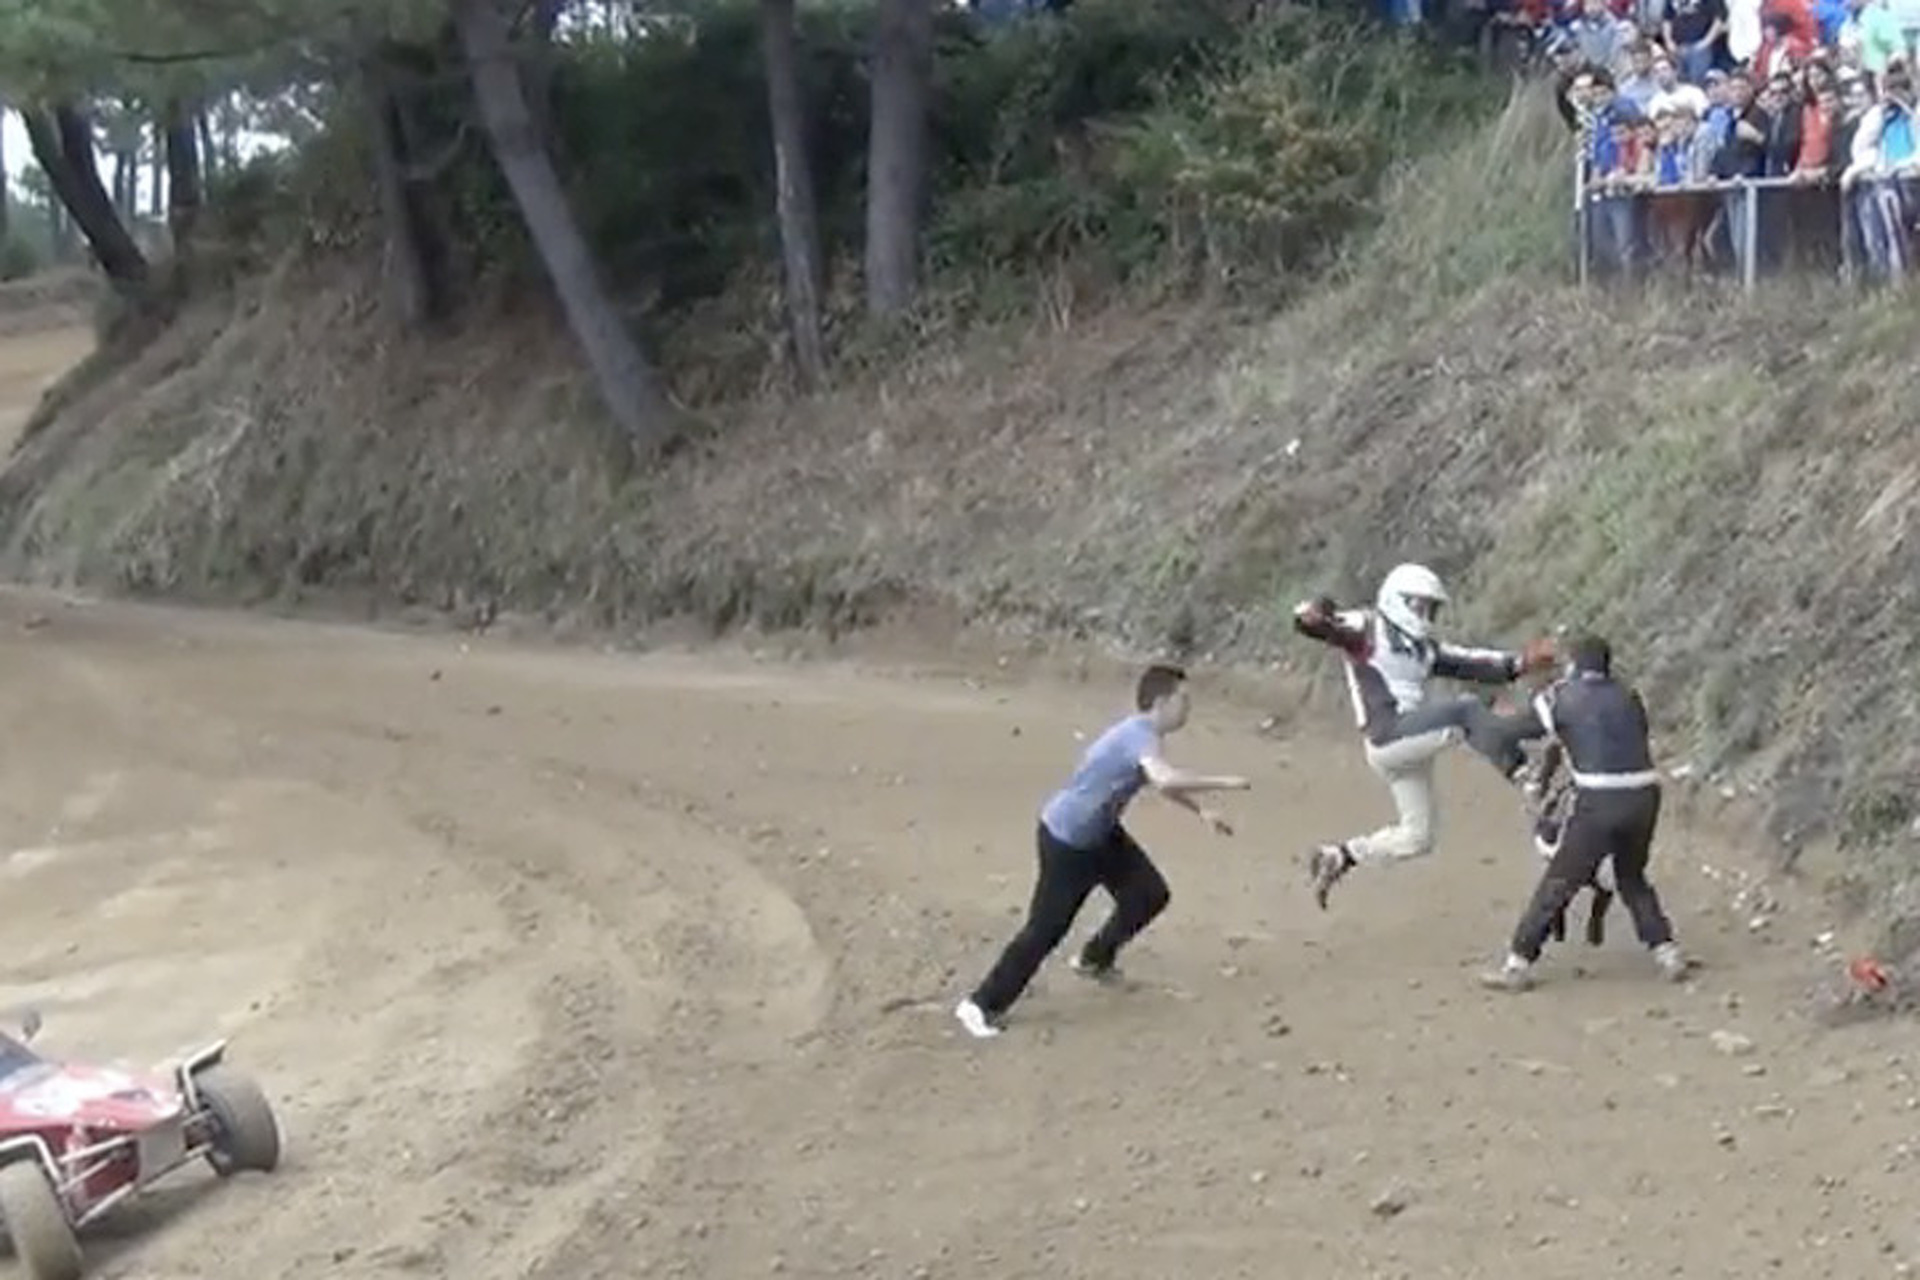 Autocross Event Turns into Slap Fight in Spain